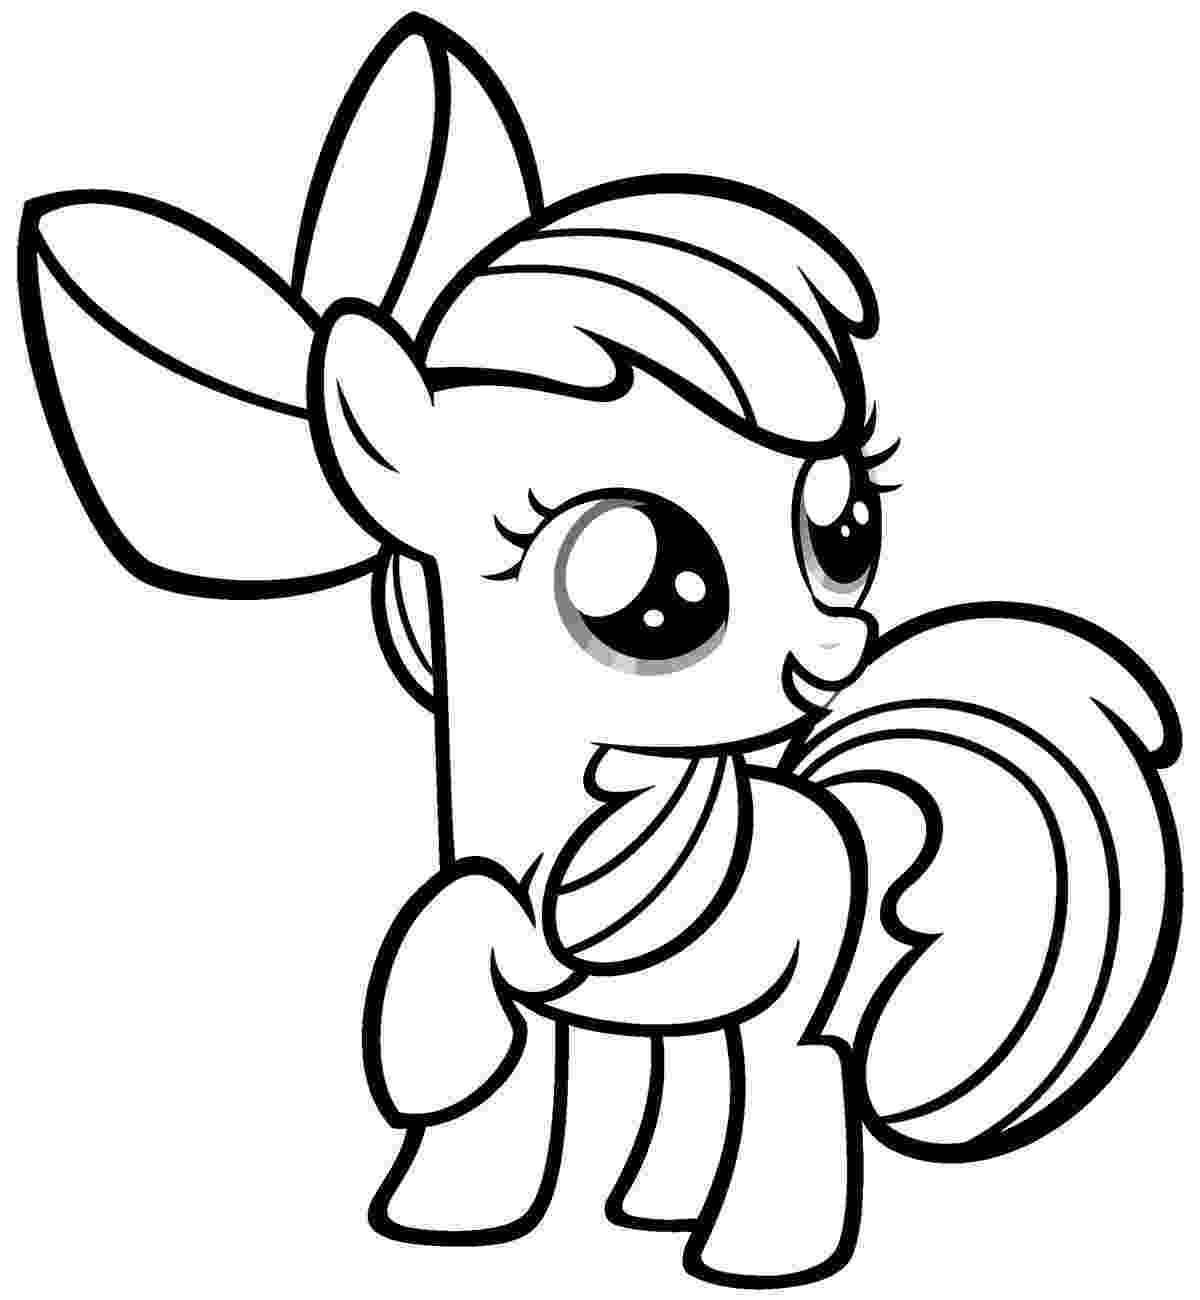 my little pony baby coloring pages my little pony coloring pages baby pony free coloring pages pony little coloring pages baby my